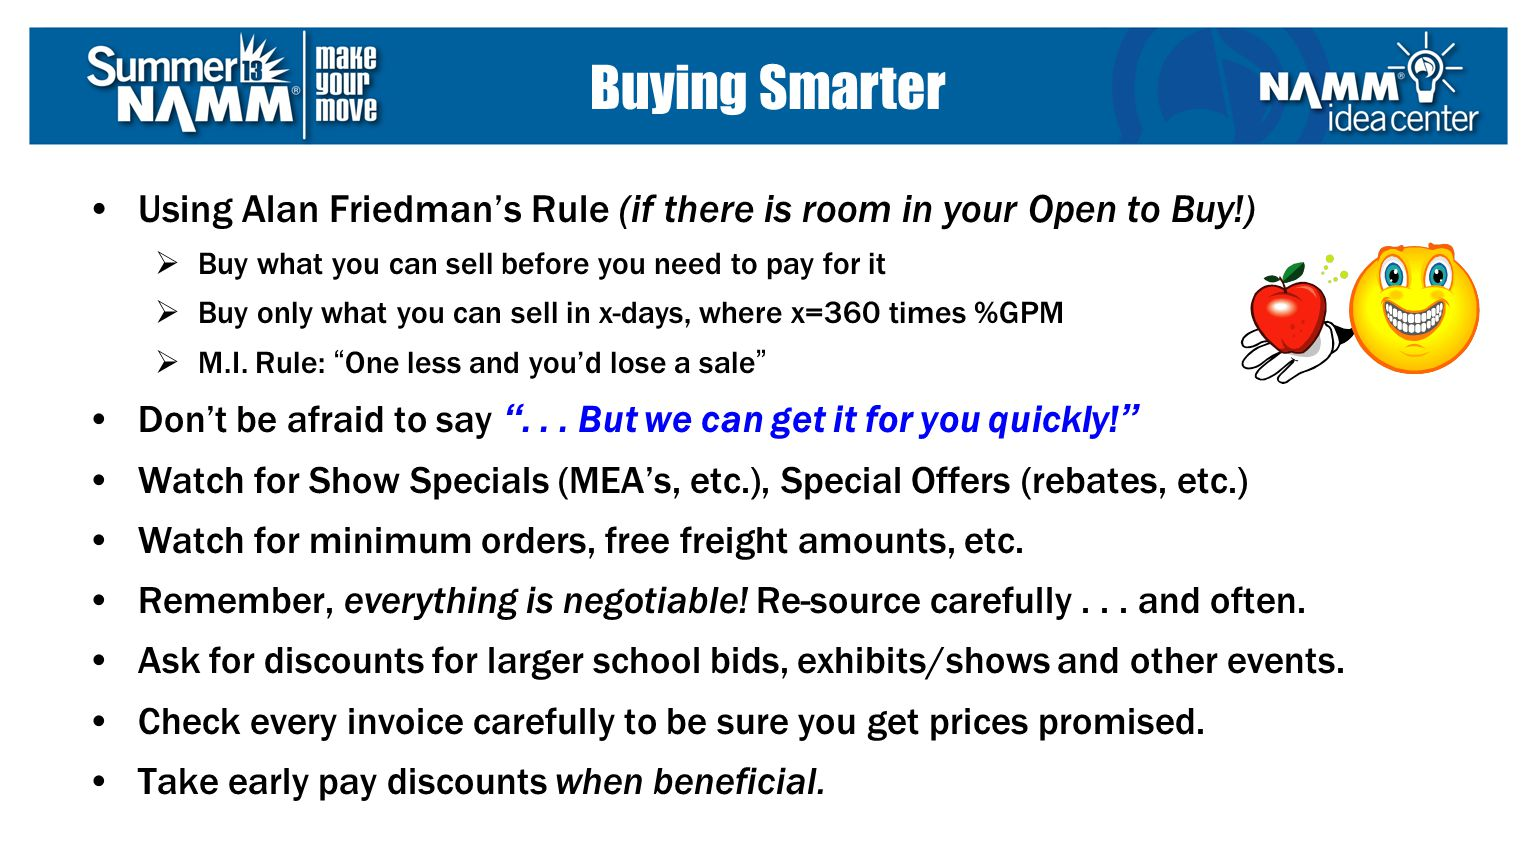 Using Alan Friedmans Rule (if there is room in your Open to Buy!) Buy what you can sell before you need to pay for it Buy only what you can sell in x-